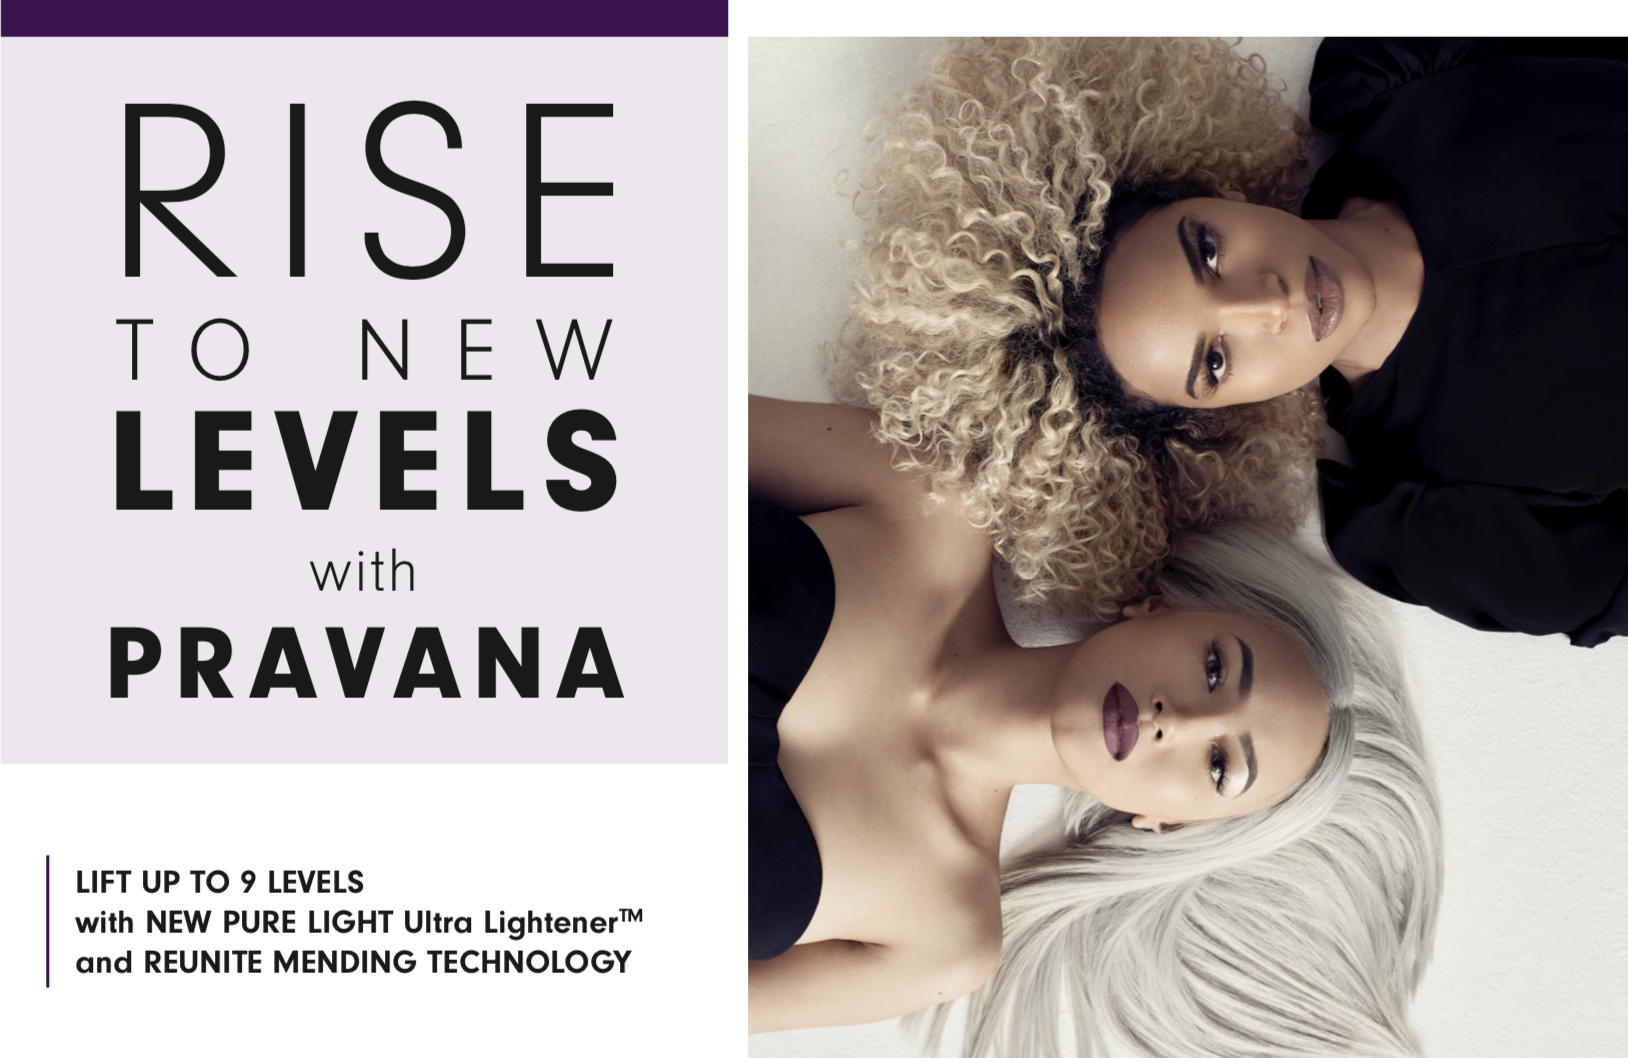 Rise to new levels with PRAVANA. Lift up to 9 levels with new pure light Ultra Lightener and reunite mending technology. Photo of two women lying on white surface.